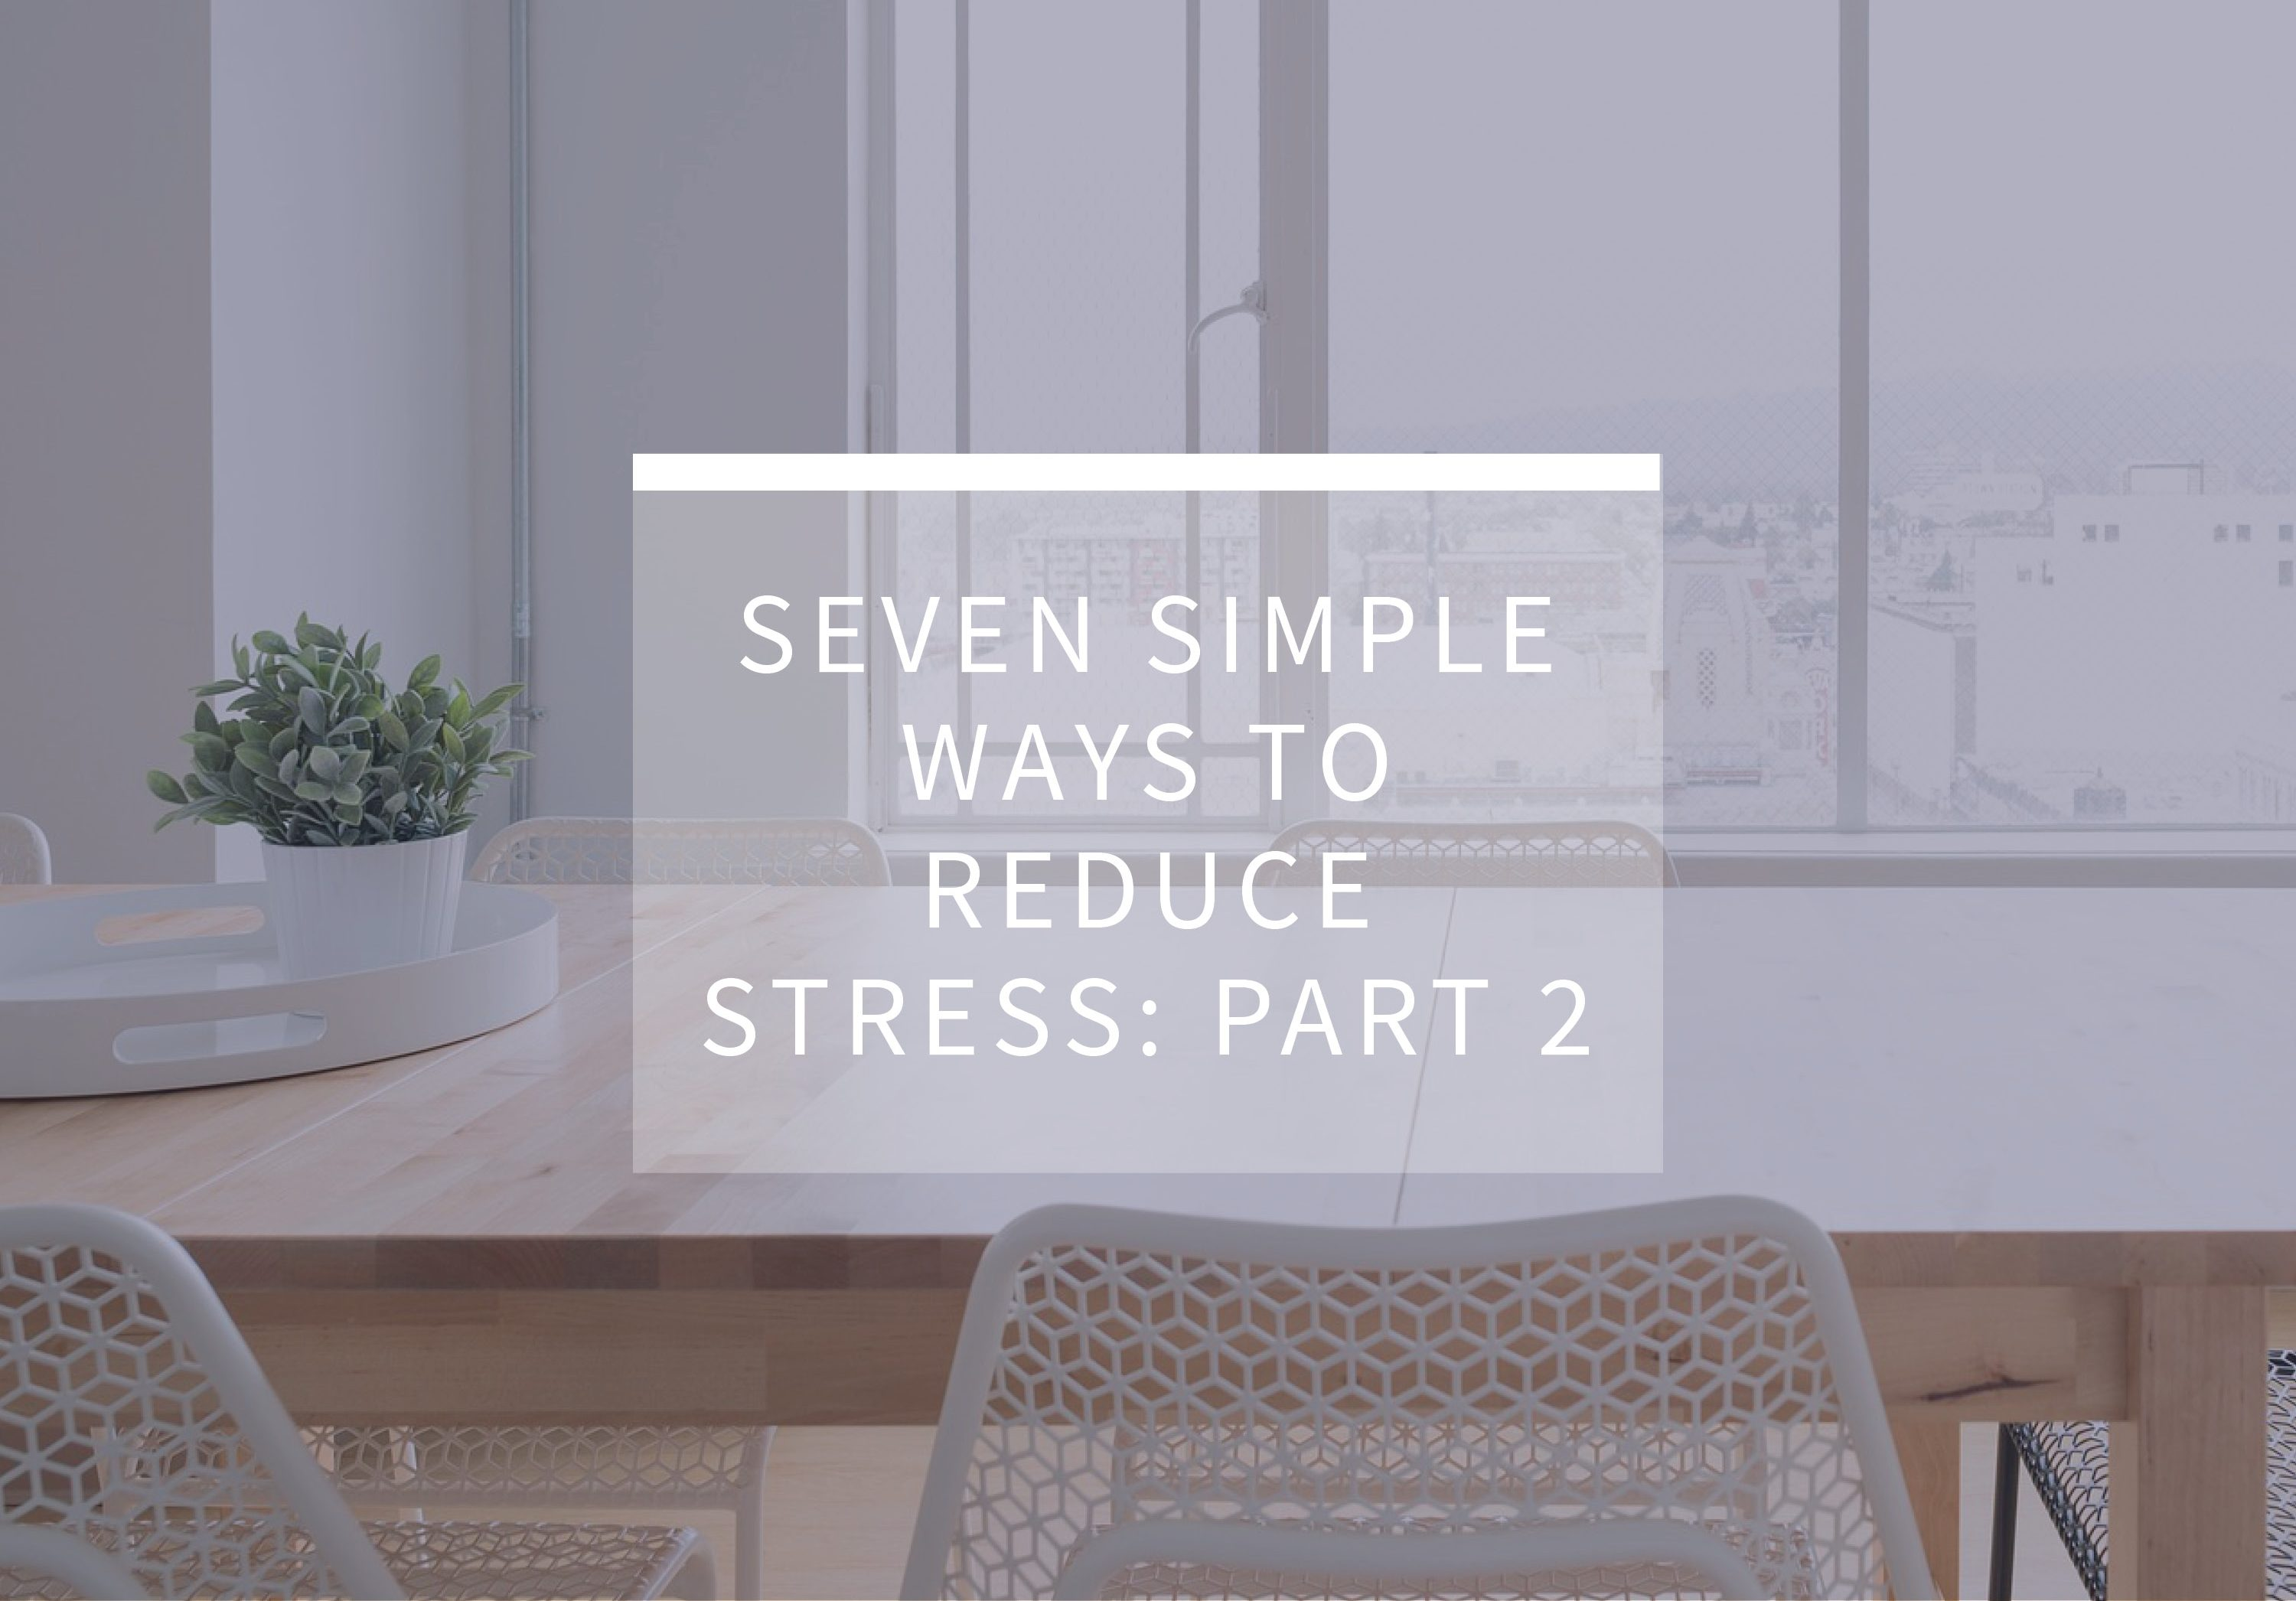 Seven Simple Ways to Reduce Stress: Part 2